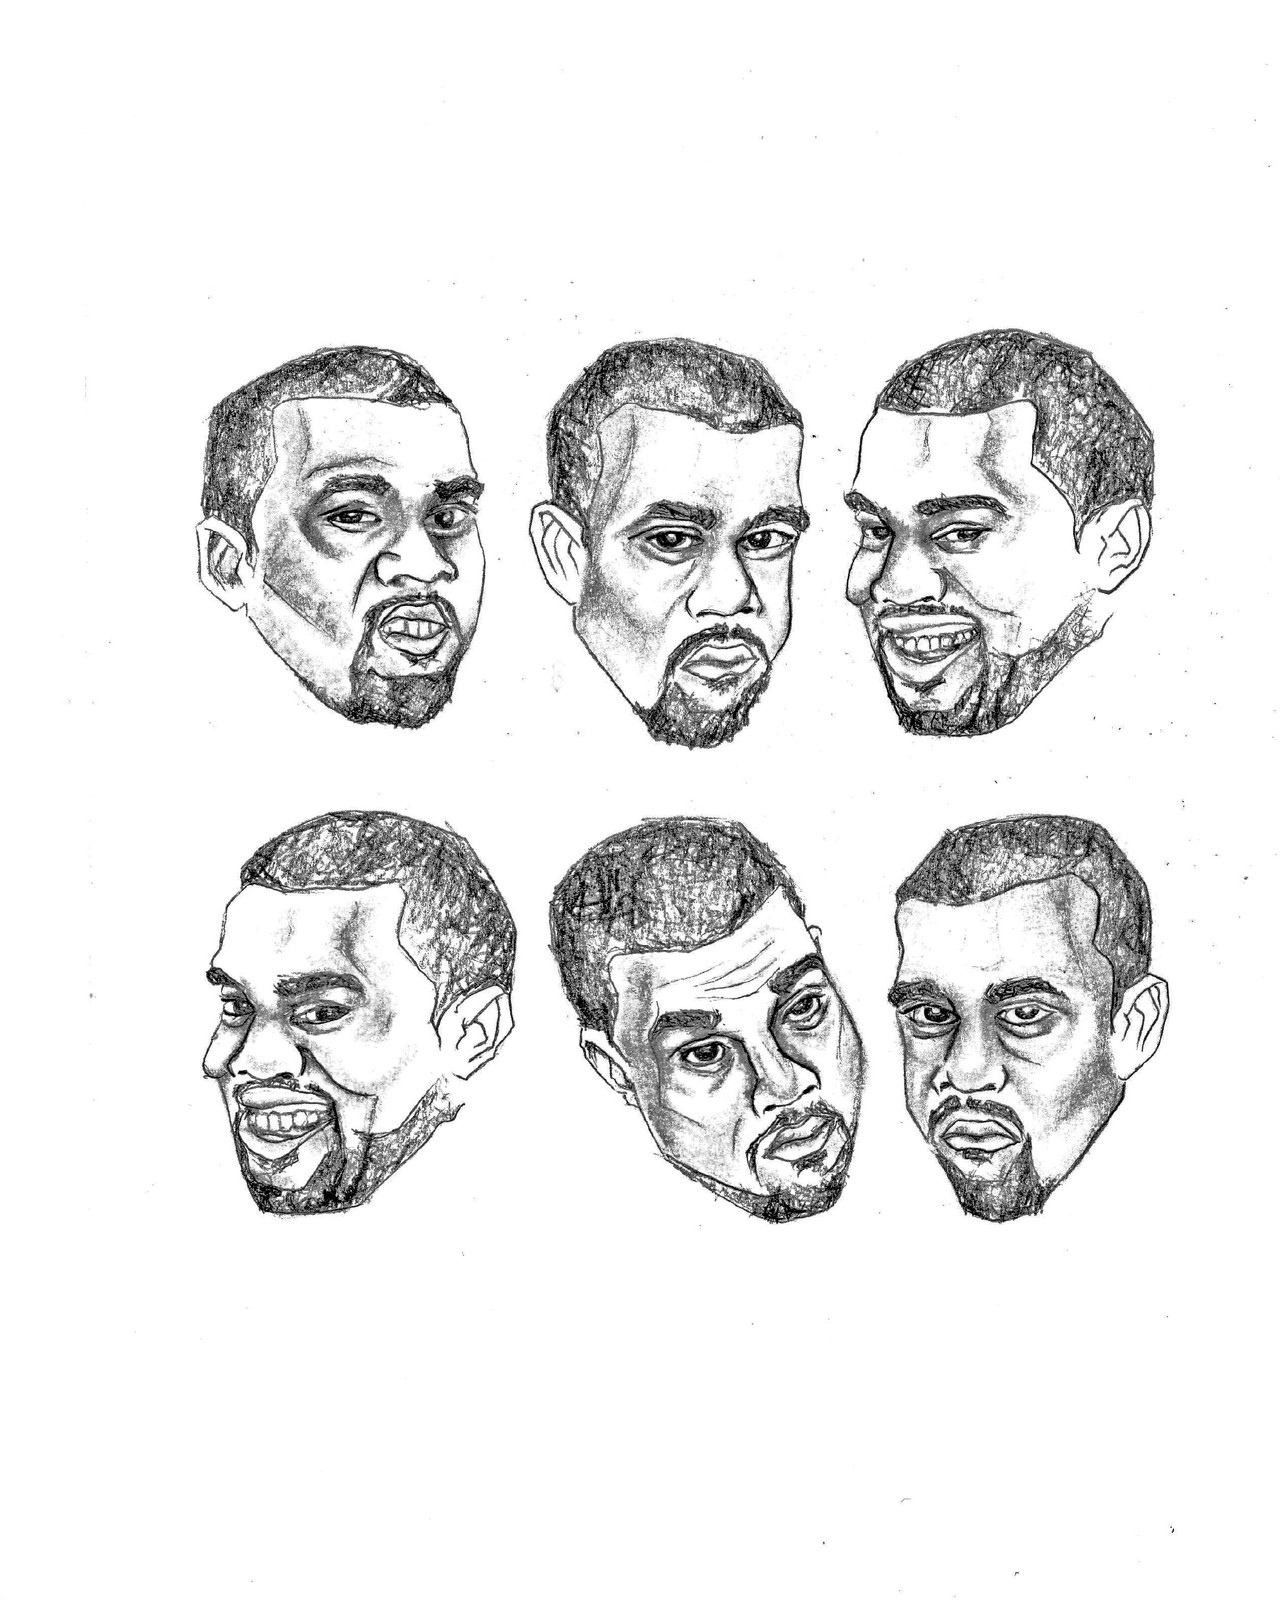 marnisa slay illustrations designs portfolio Kanye West 2014 a pull out sketch of kanye west from picture book pop style graphite on mixed media paper